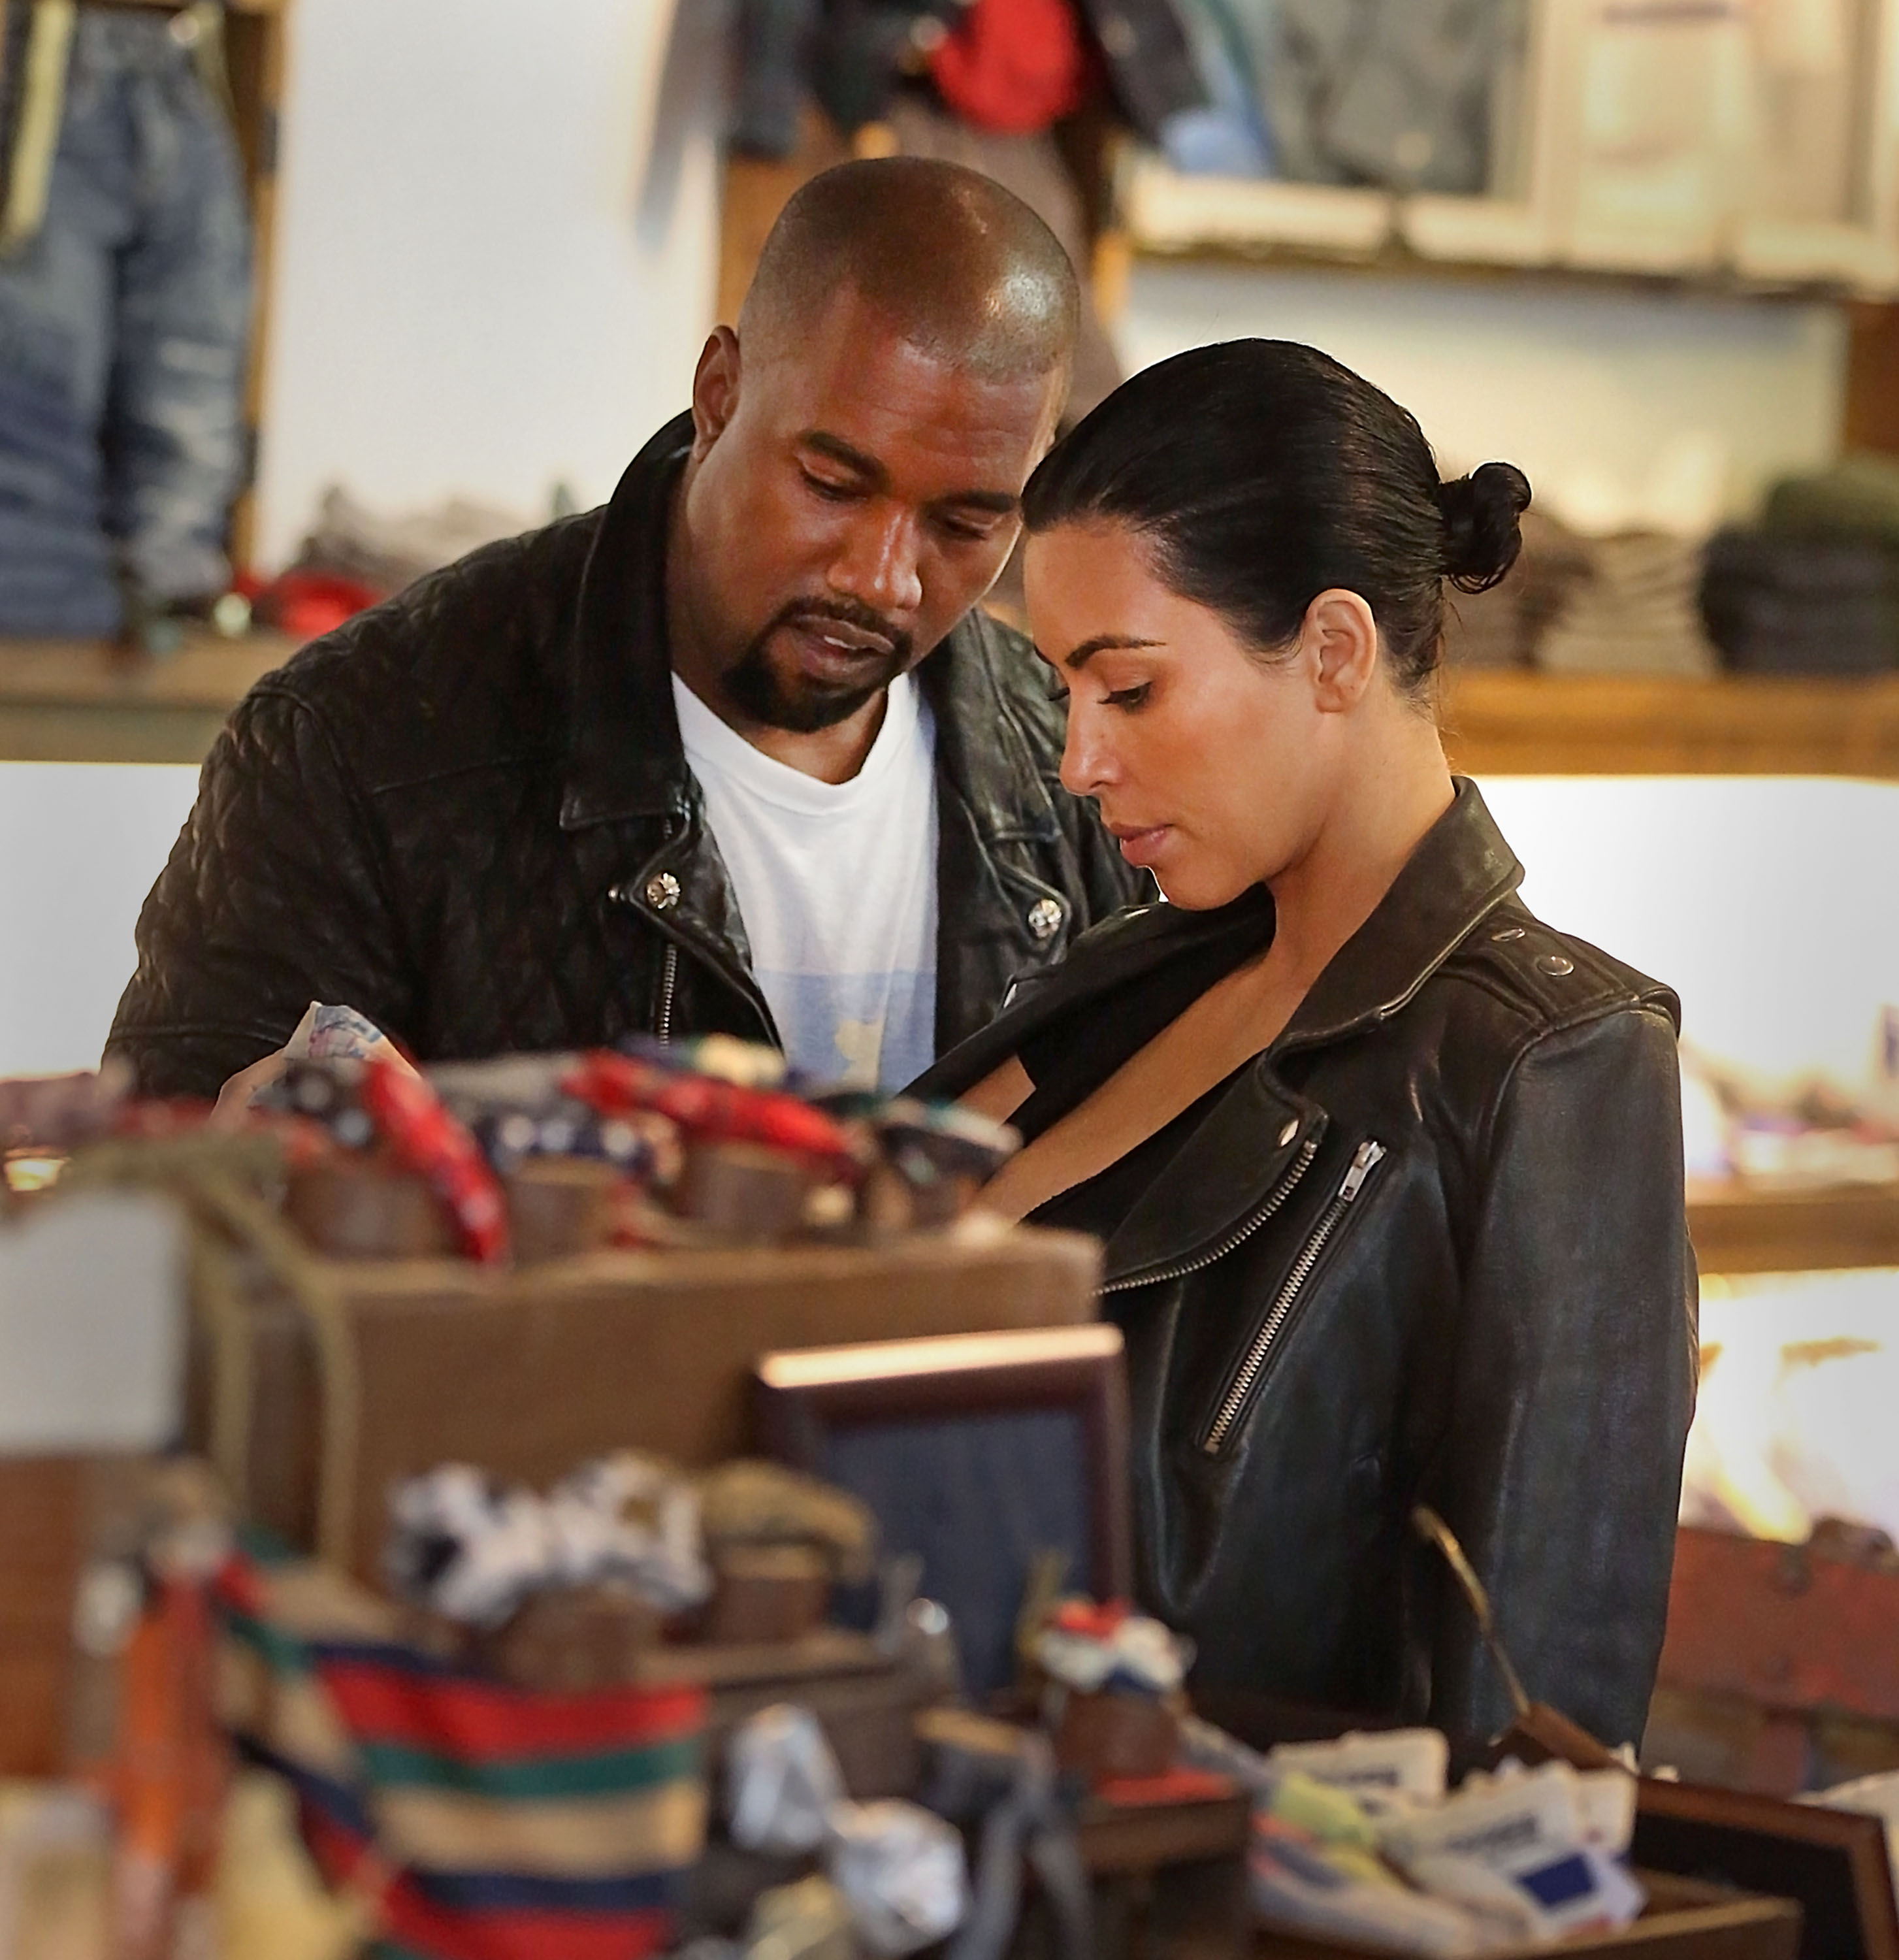 Kim And Kanye West Welcome New Baby Via Surrogate